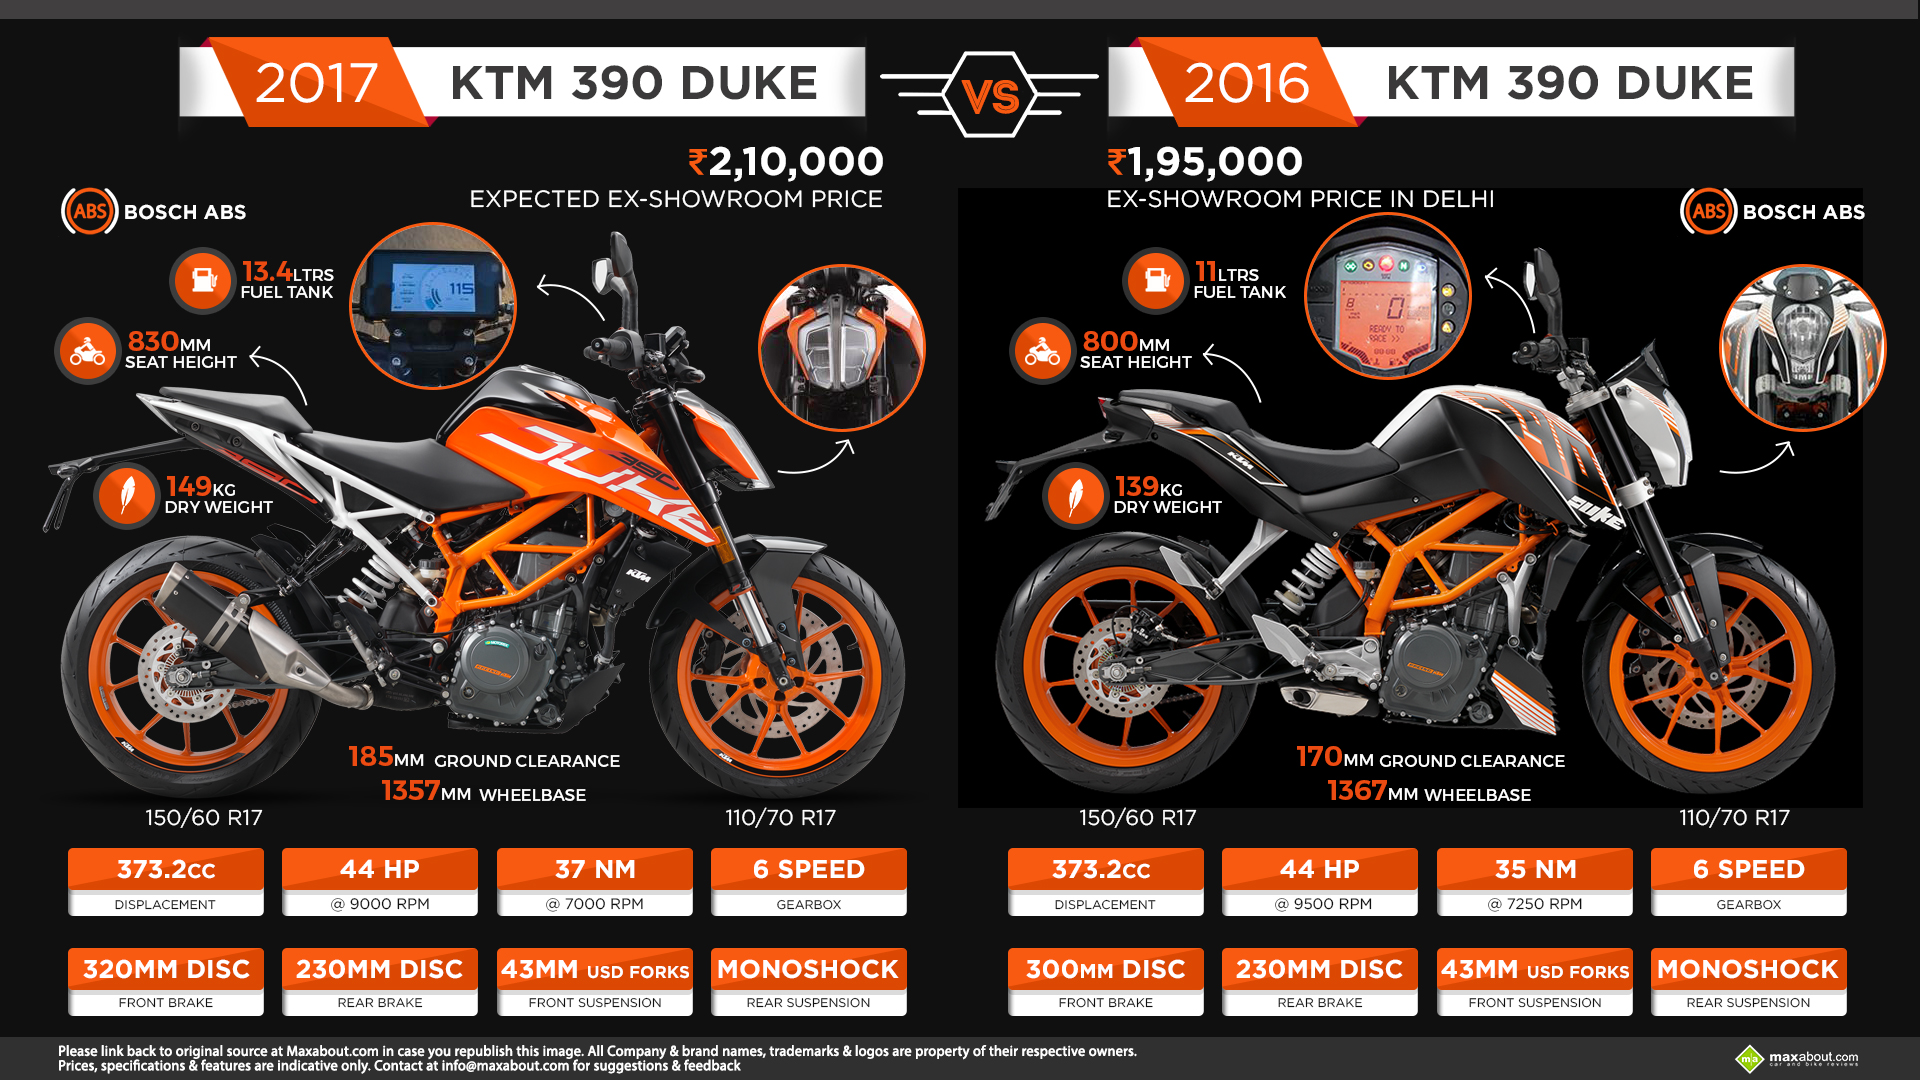 used rc car for sale with 2017 Ktm Duke 390 Vs 2016 Ktm Duke 390 on 2017 Ktm Duke 390 Vs 2016 Ktm Duke 390 likewise 2007 Lexus Lx 470 Overview C8086 also Classic Wooden Speed Boats as well Welderup S Dually Rat Rods Have Ste unk Look Nailed Video 102467 additionally Gumtree Gets A New Tree And A Classic Tear Jerker Ad.